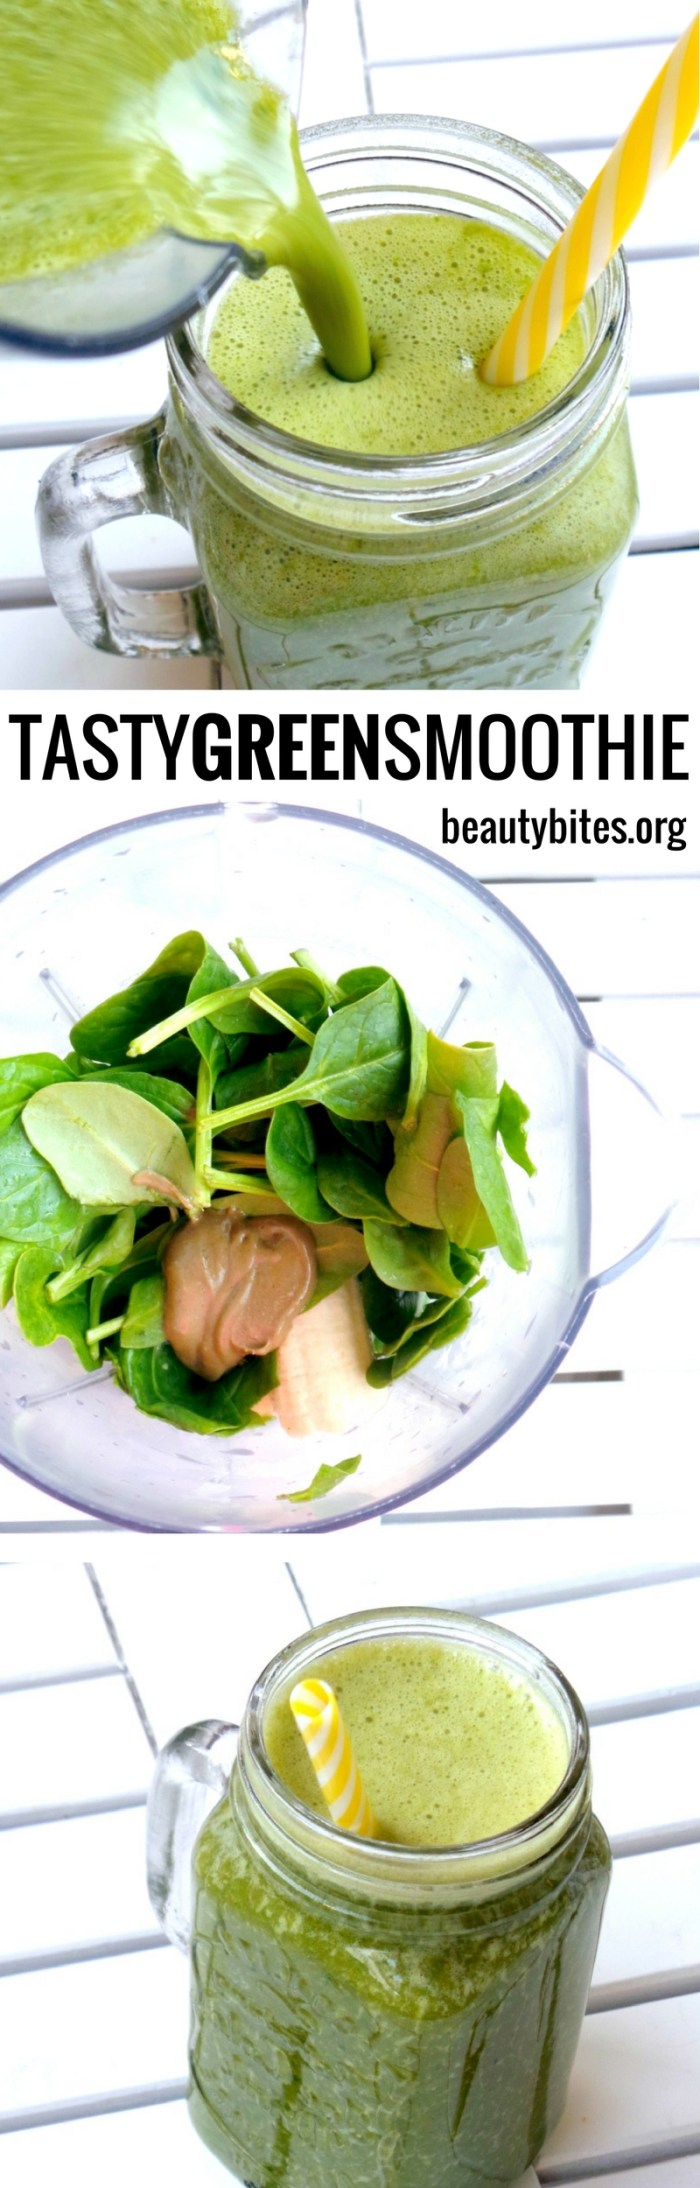 This healthy green smoothie is so tasty, I actually WANT to drink it every day. #greensmoothie